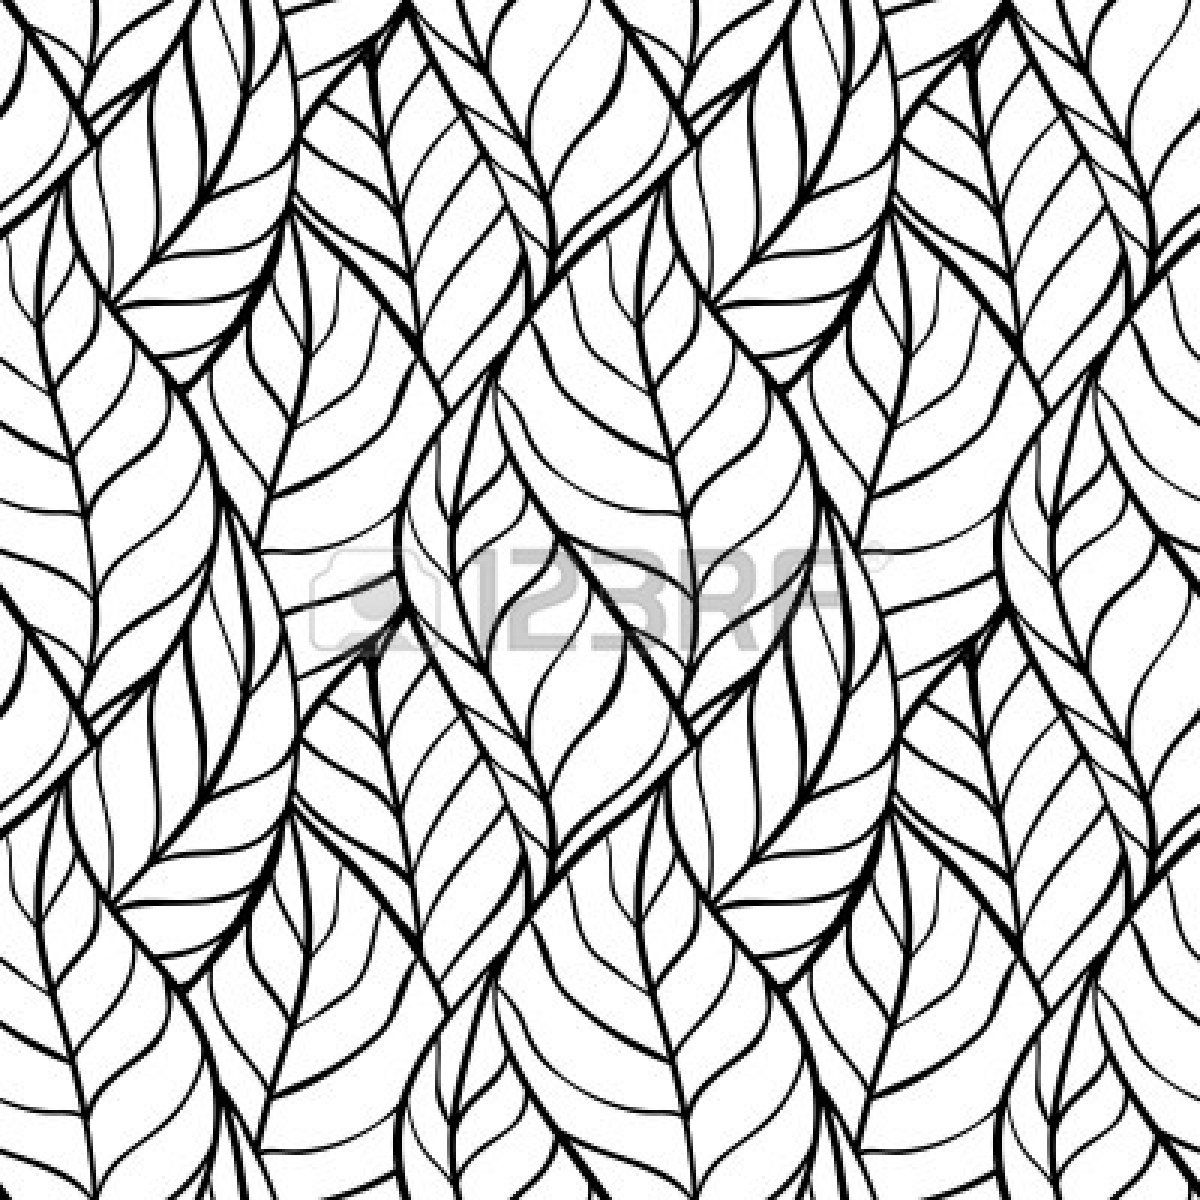 http://us.123rf.com/400wm/400/400/incomible/incomible1206/incomible120600049/13927571-illustration-of-leaves--seamless-stylish-pattern.jpg